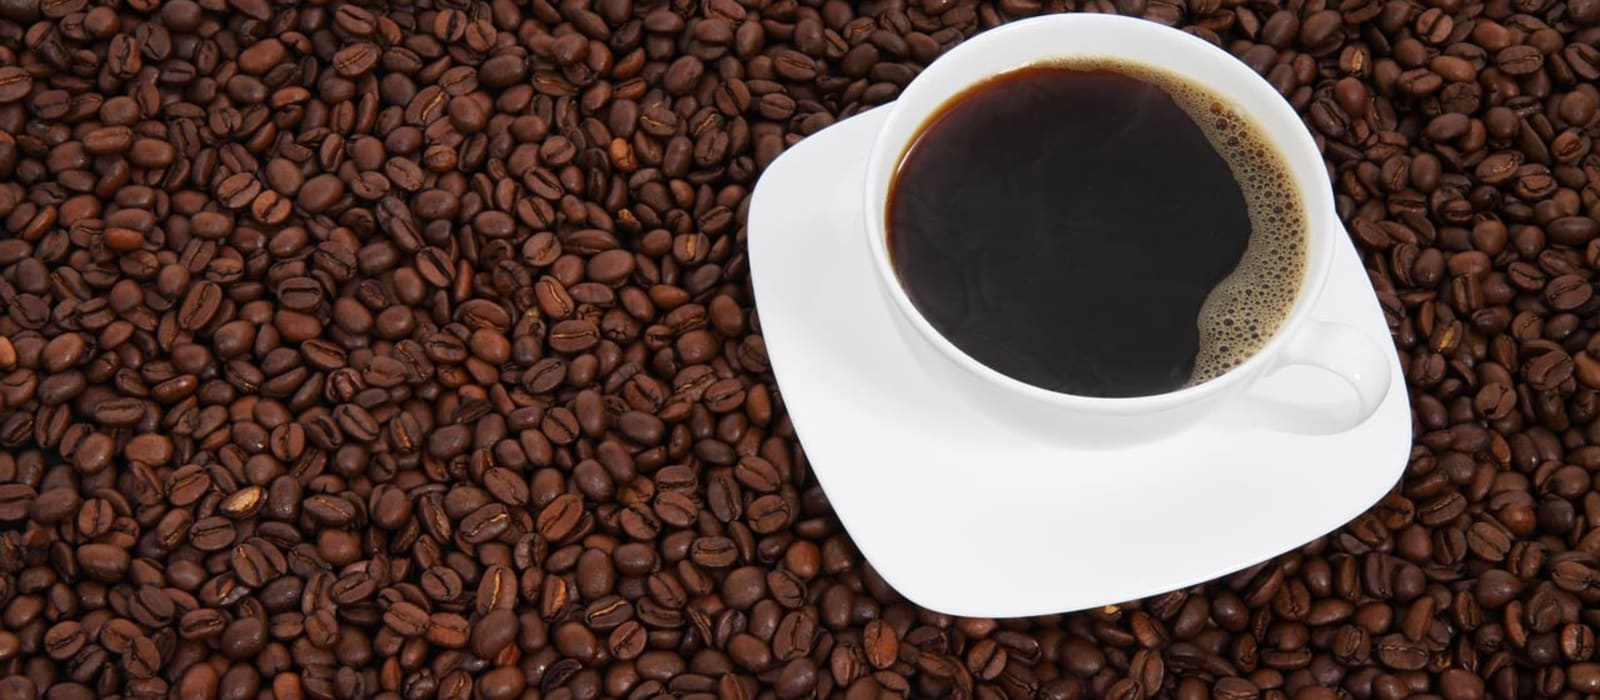 Image shows a high shot of a cup of coffee sitting on a bed of coffee beans